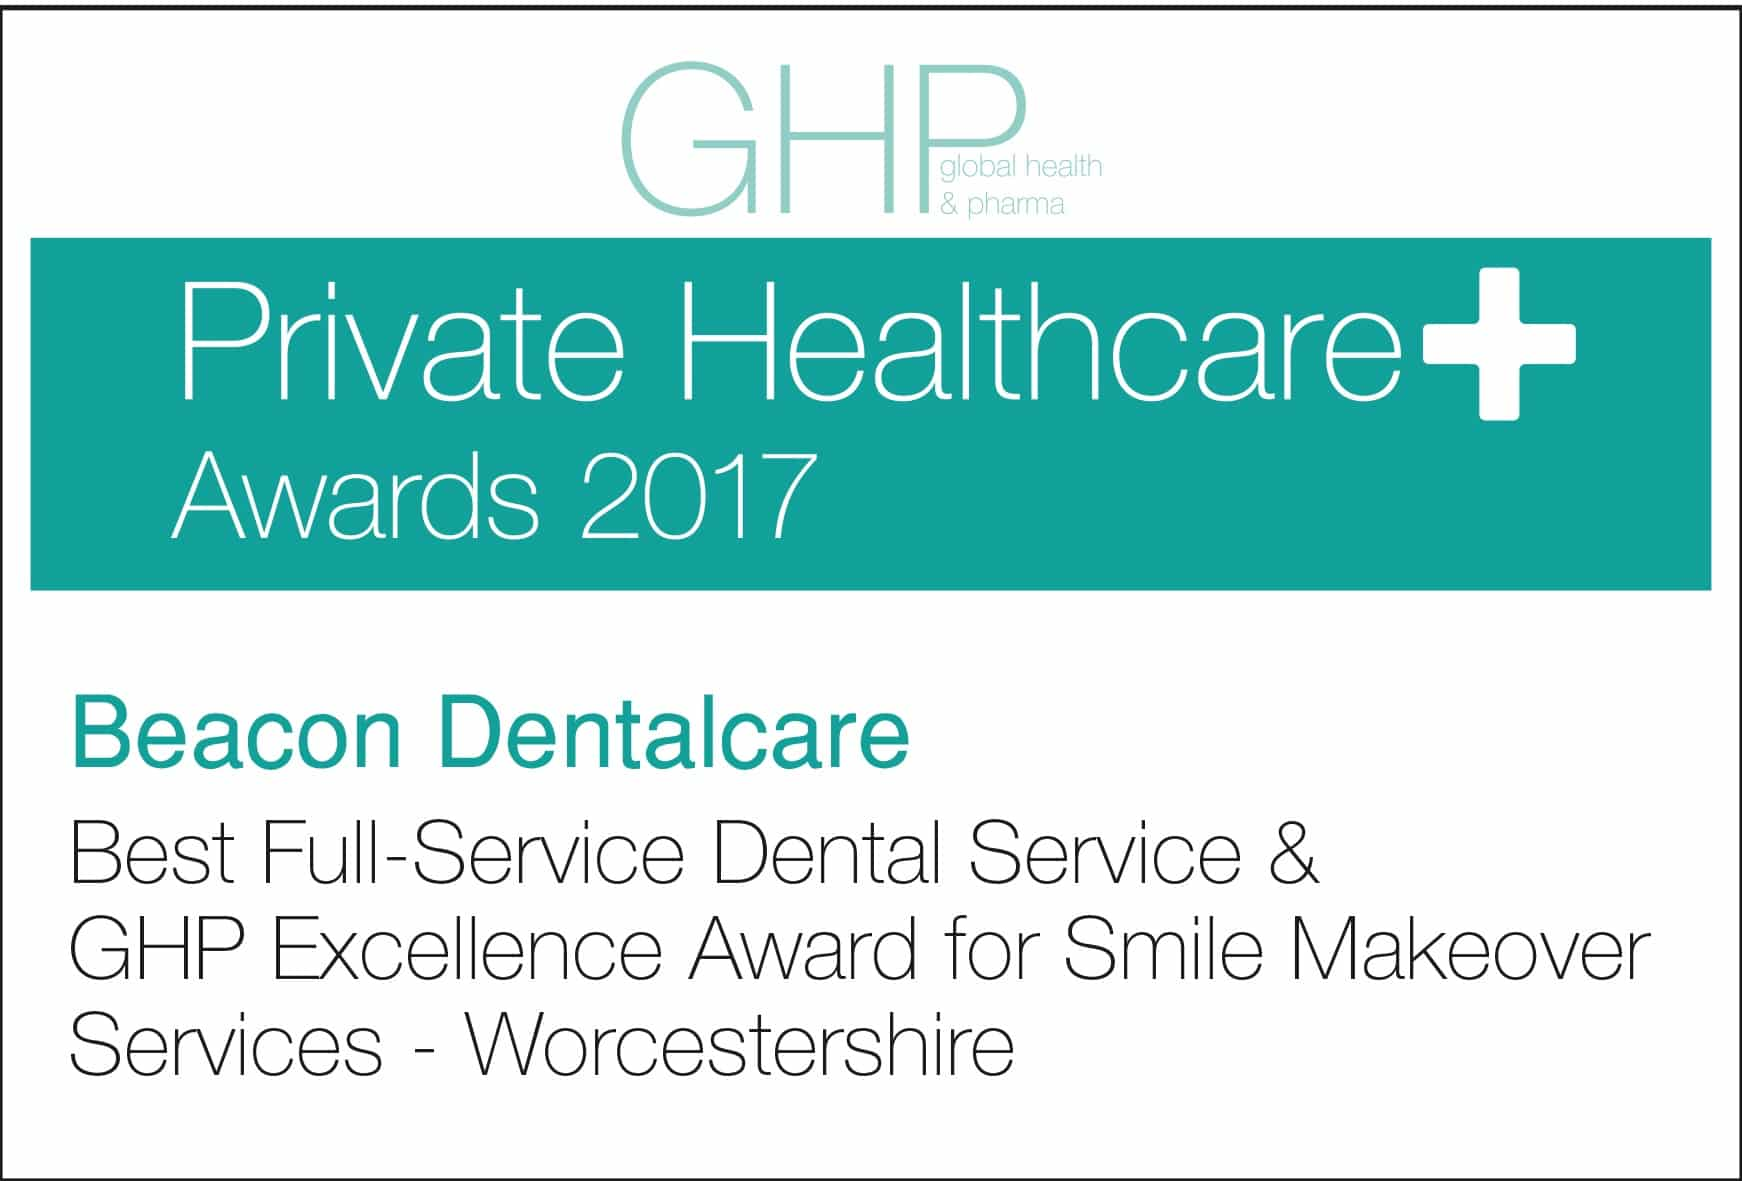 Beacon Dental Awards